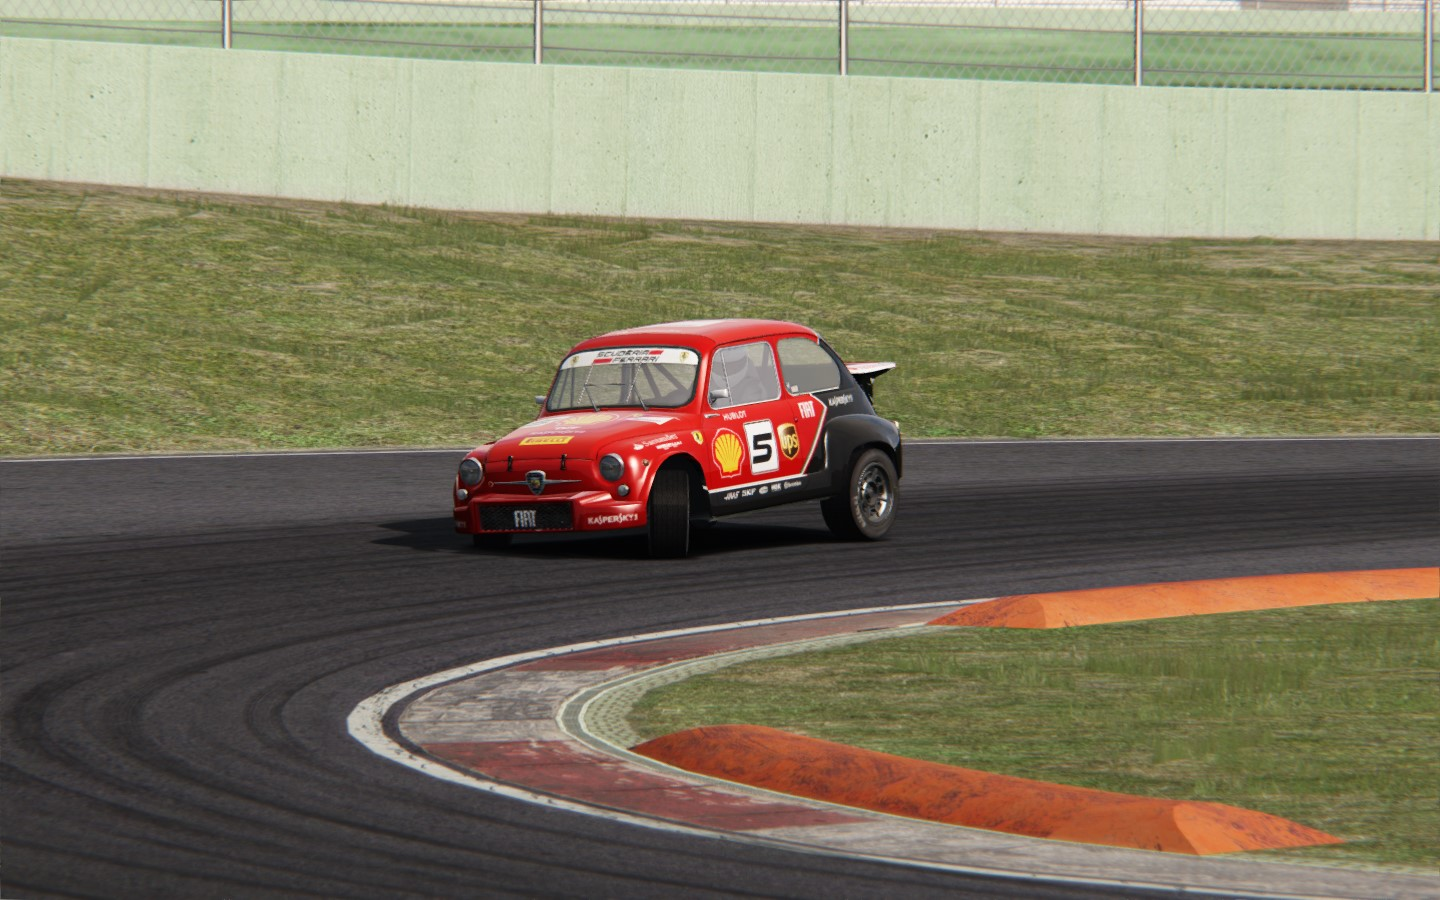 Screenshot_abarth_1000tc_vallelunga_17-1-116-23-35-20.jpg